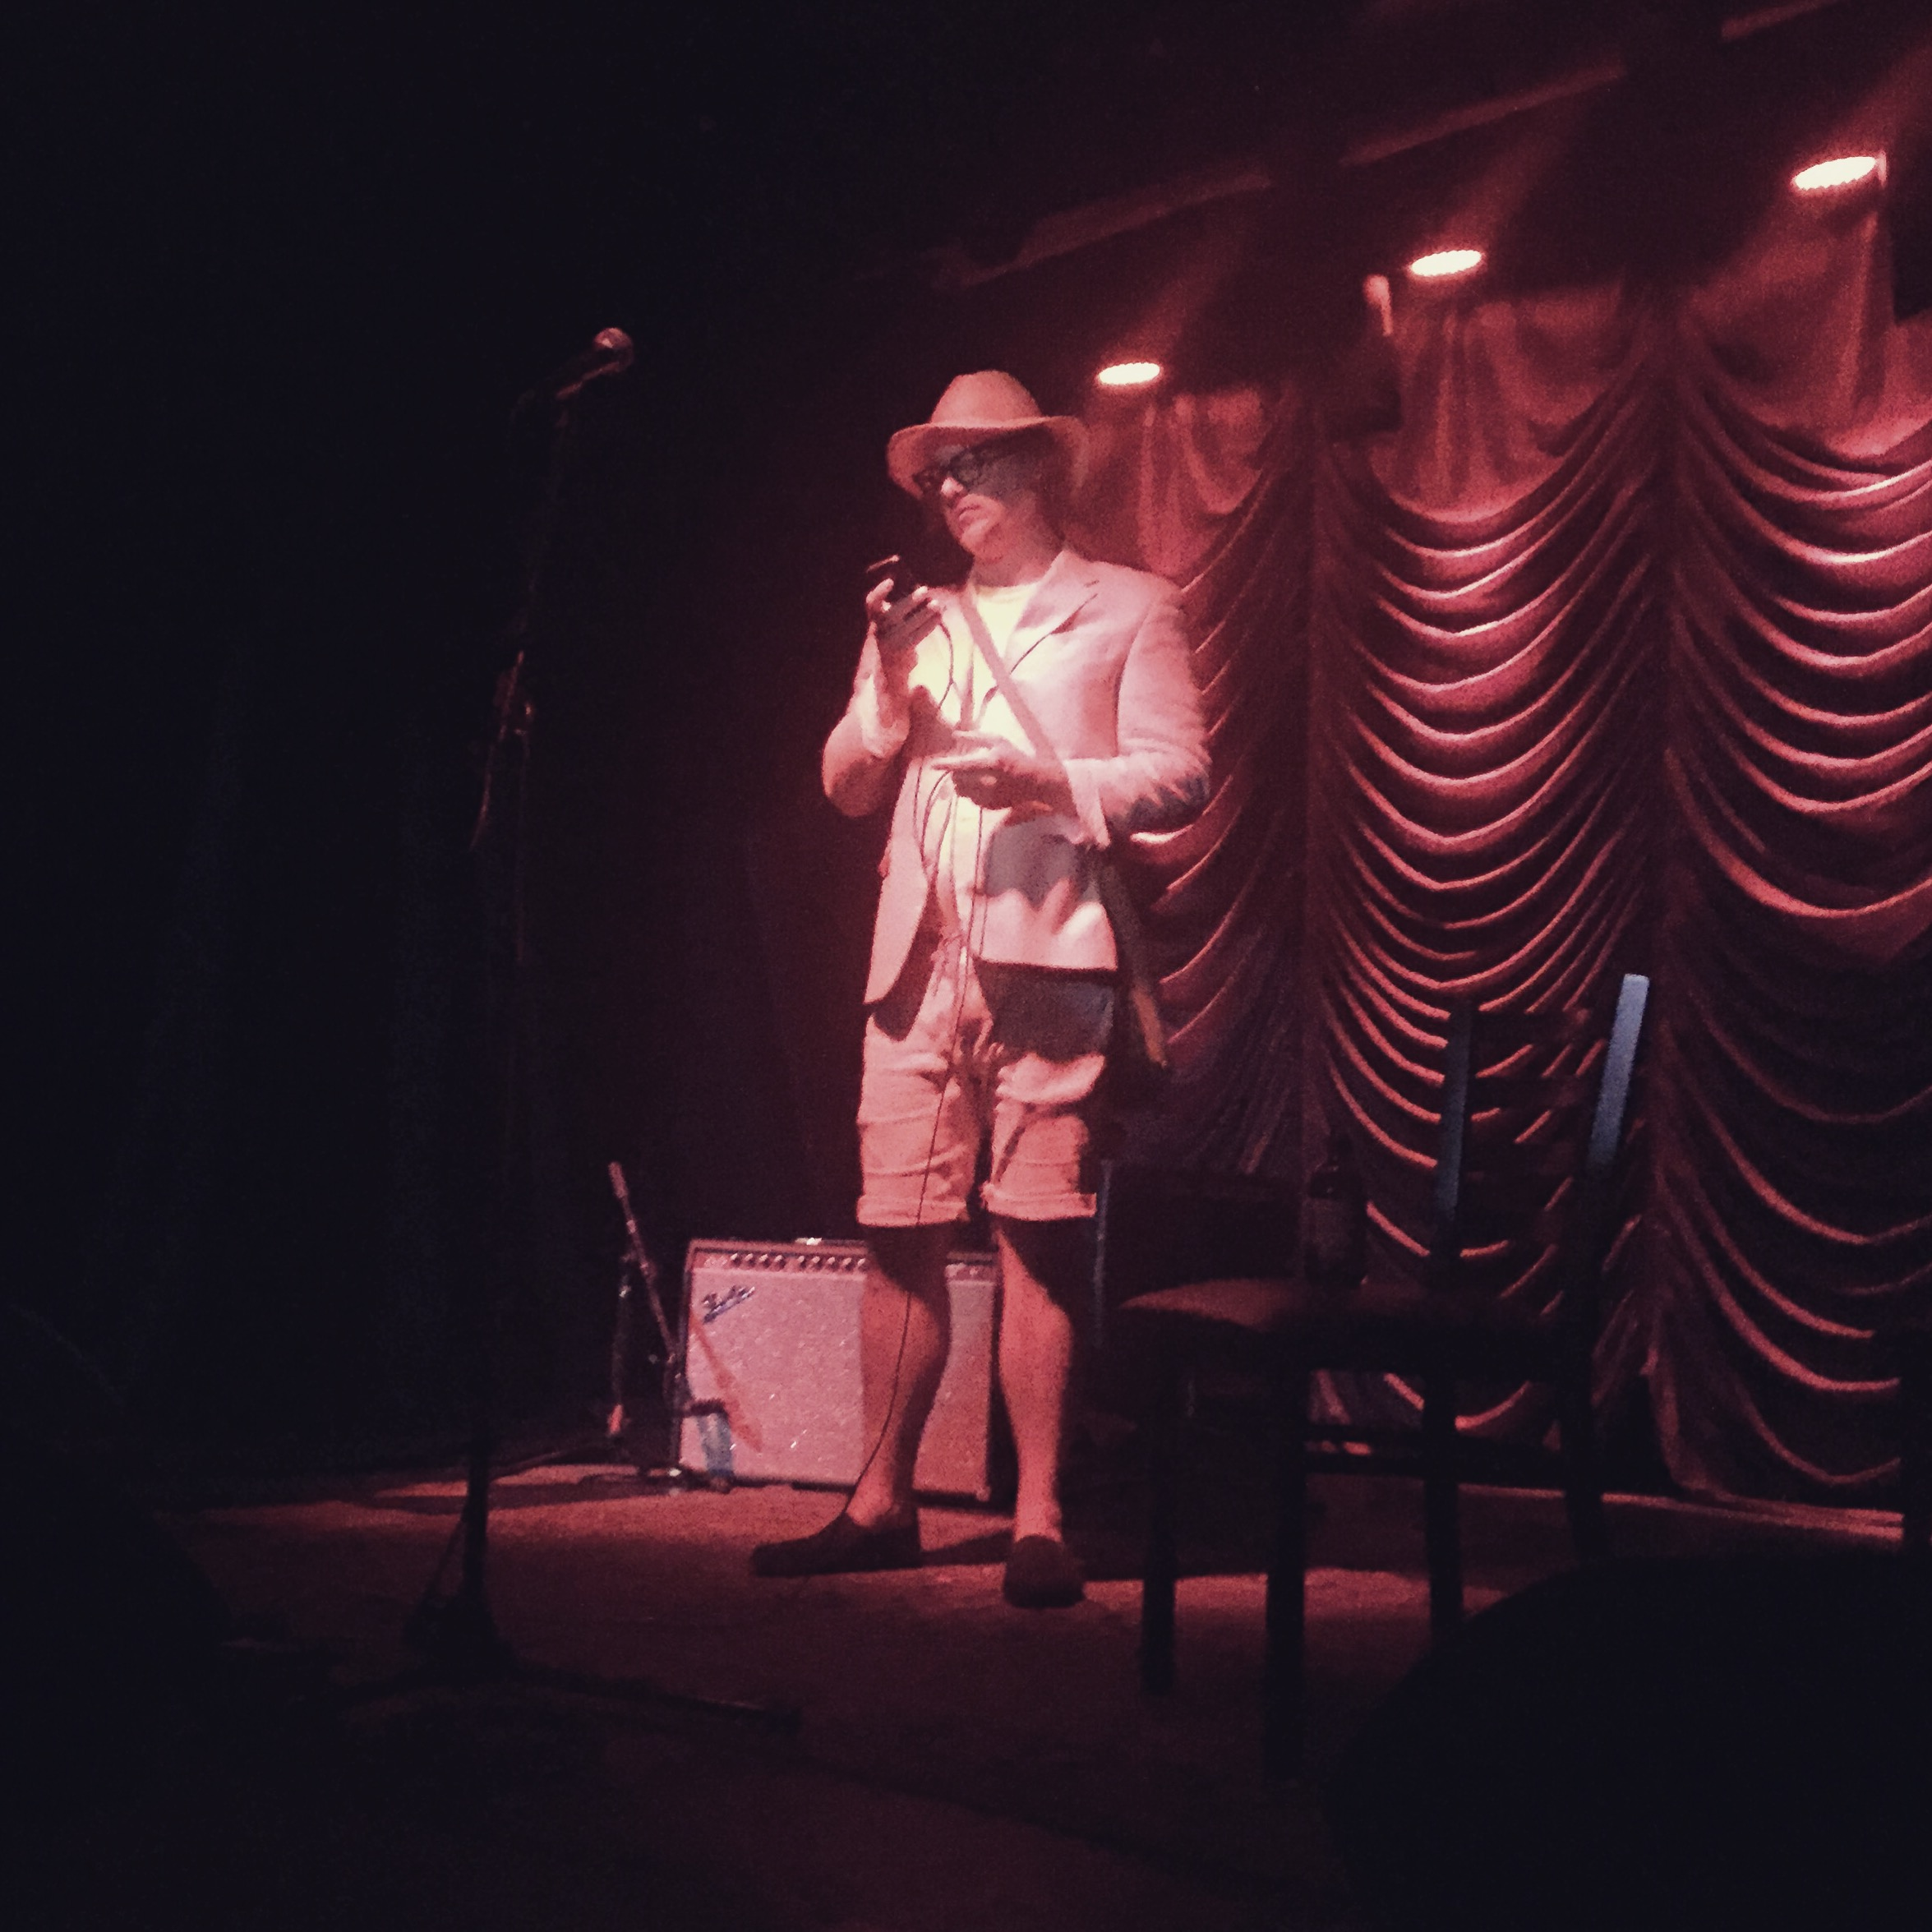 Ben Kronberg performing  Just Songs  at American Beauty Bar. Photograph by Christian Niedan